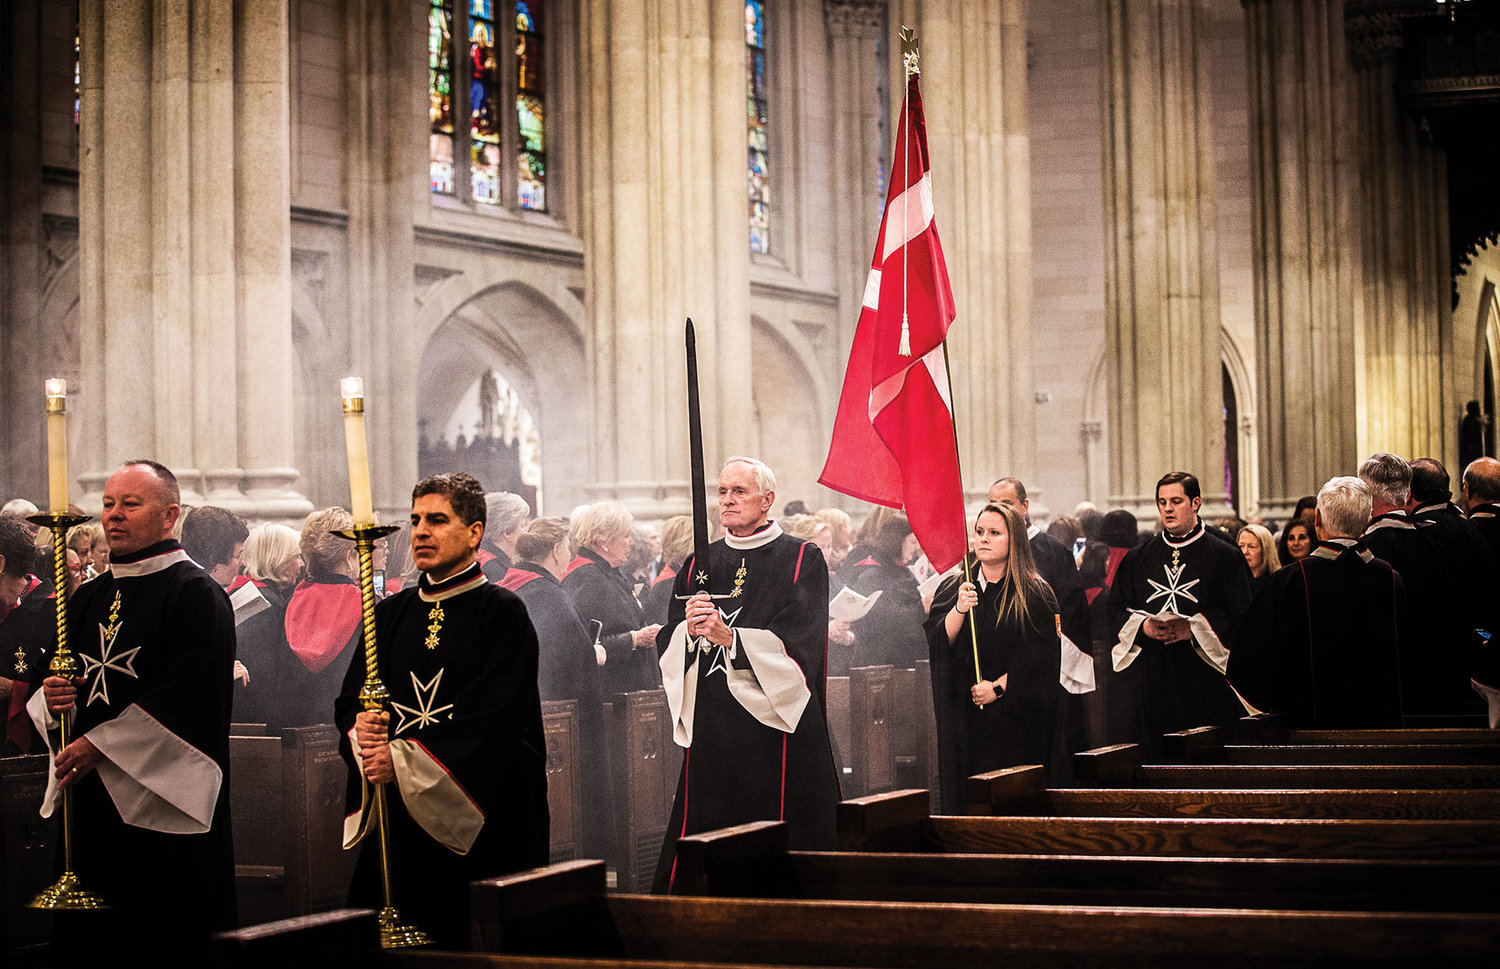 Knights and dames process into the cathedral.